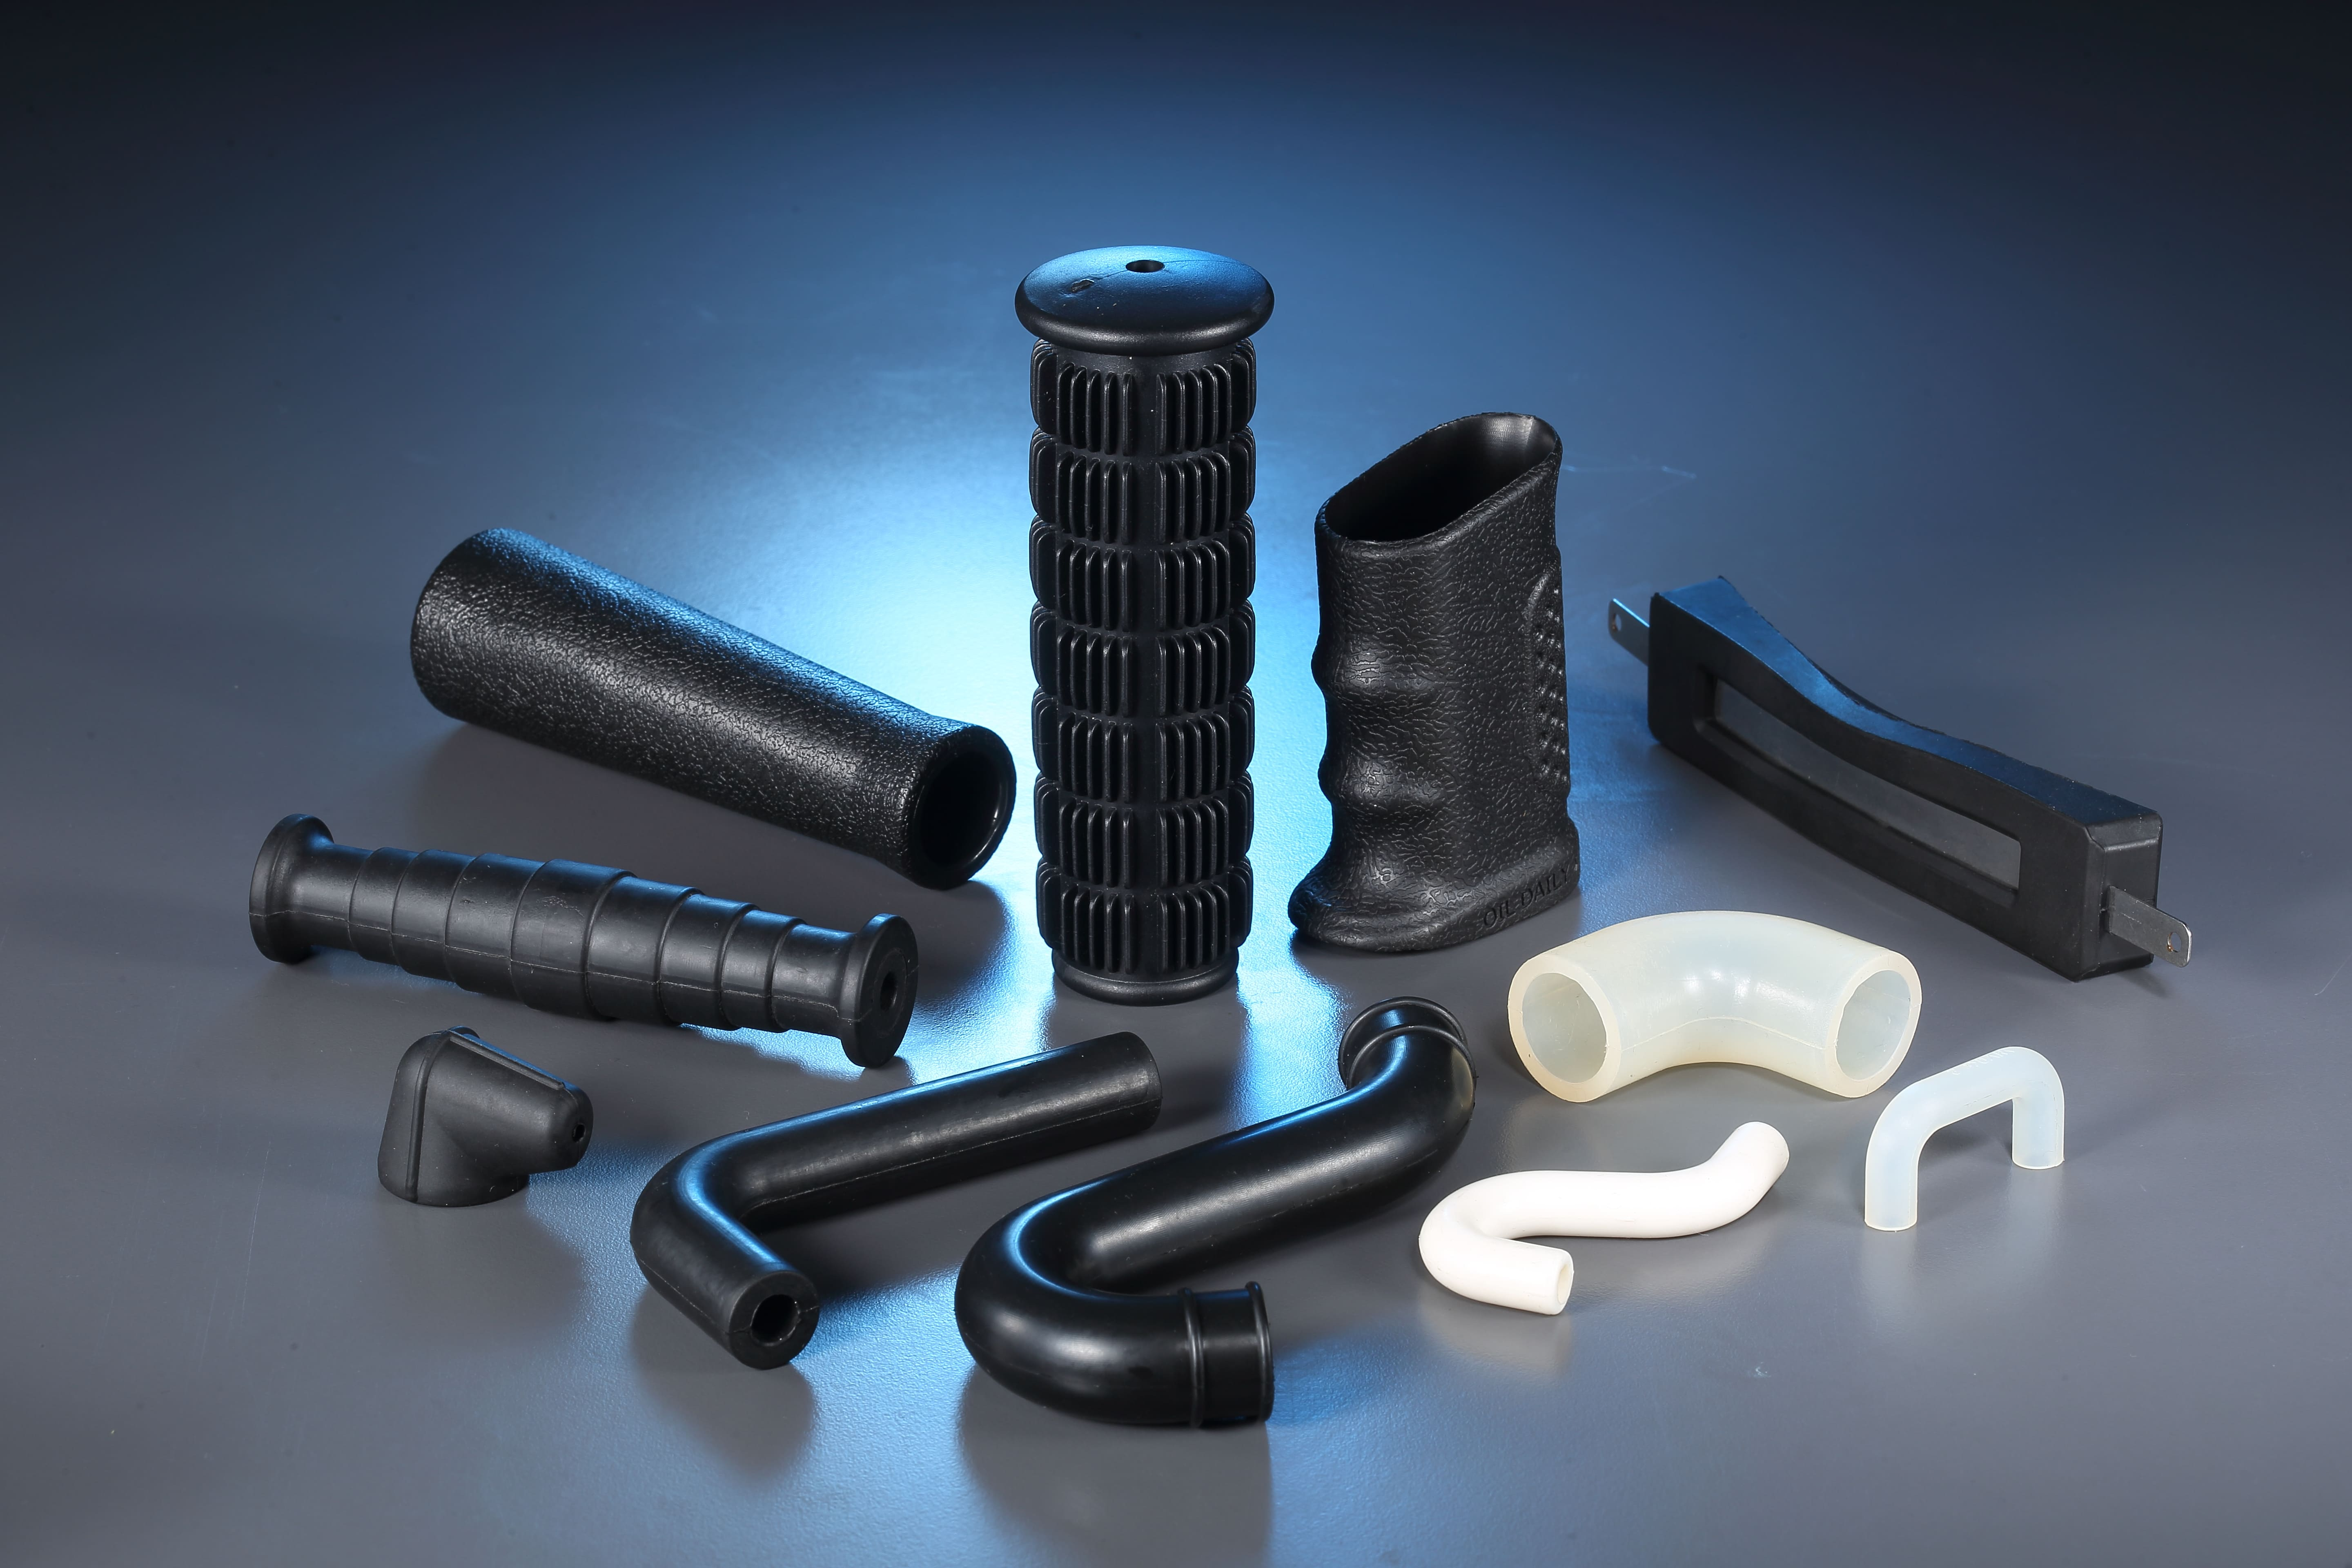 Automobile Robber elbow pipe for Rubber, Plastic Parts made by Yee Ming Ying Co., LTD. 昱銘穎有限公司 - MatchSupplier.com